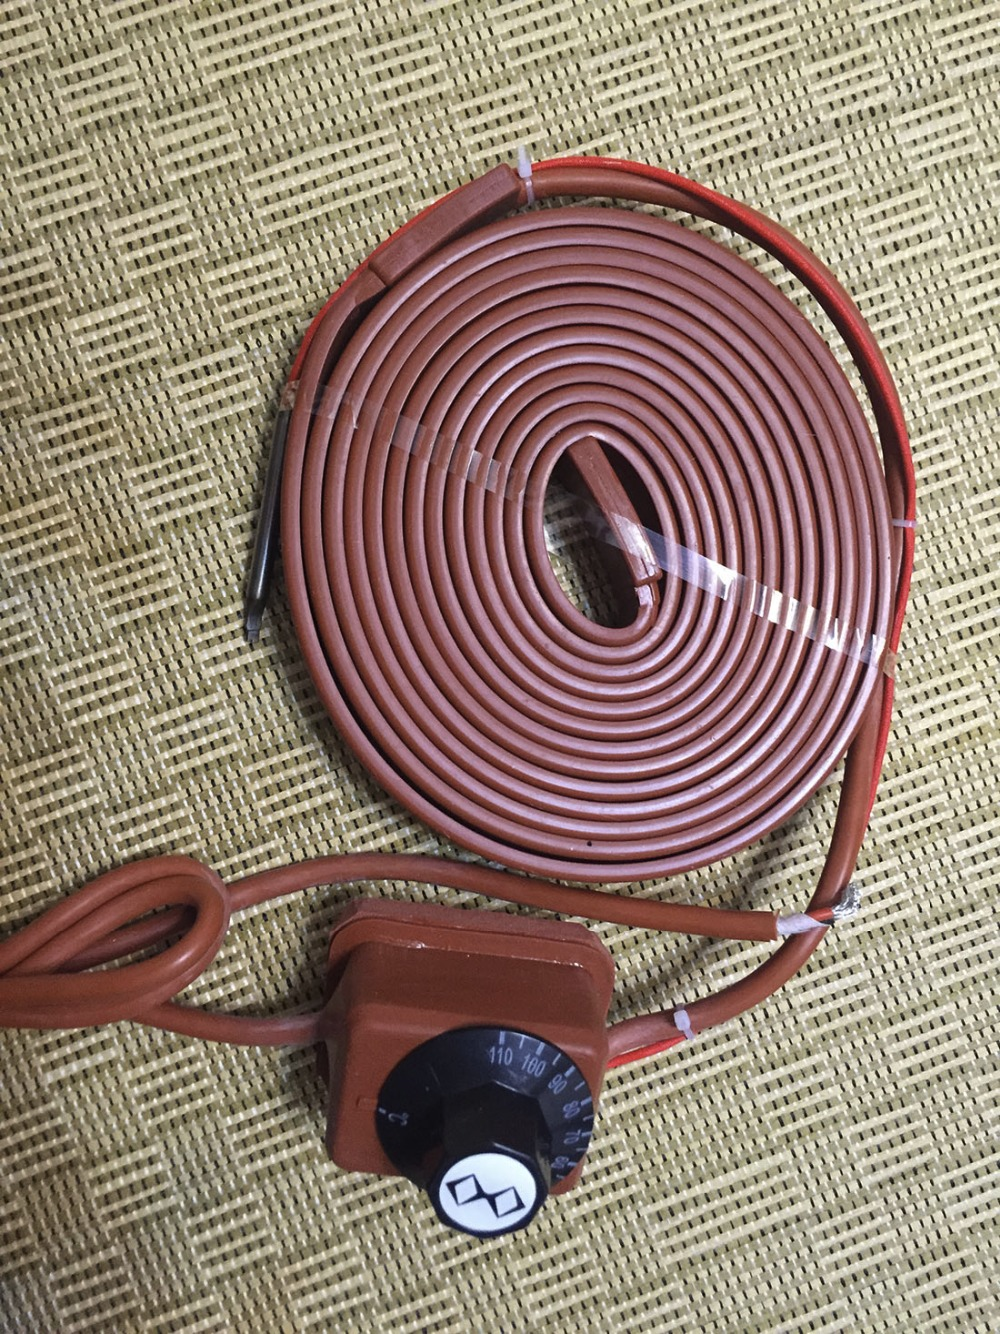 20*1300mm 390w 220v +Rotary temperature controlle flexible Silicone Heating belt tracing Silicone Rubber Pipe Heater waterproof 15x2000mm 160w 220v high quality flexible silicone heating belt heat tracing belt silicone rubber pipe heater waterproof